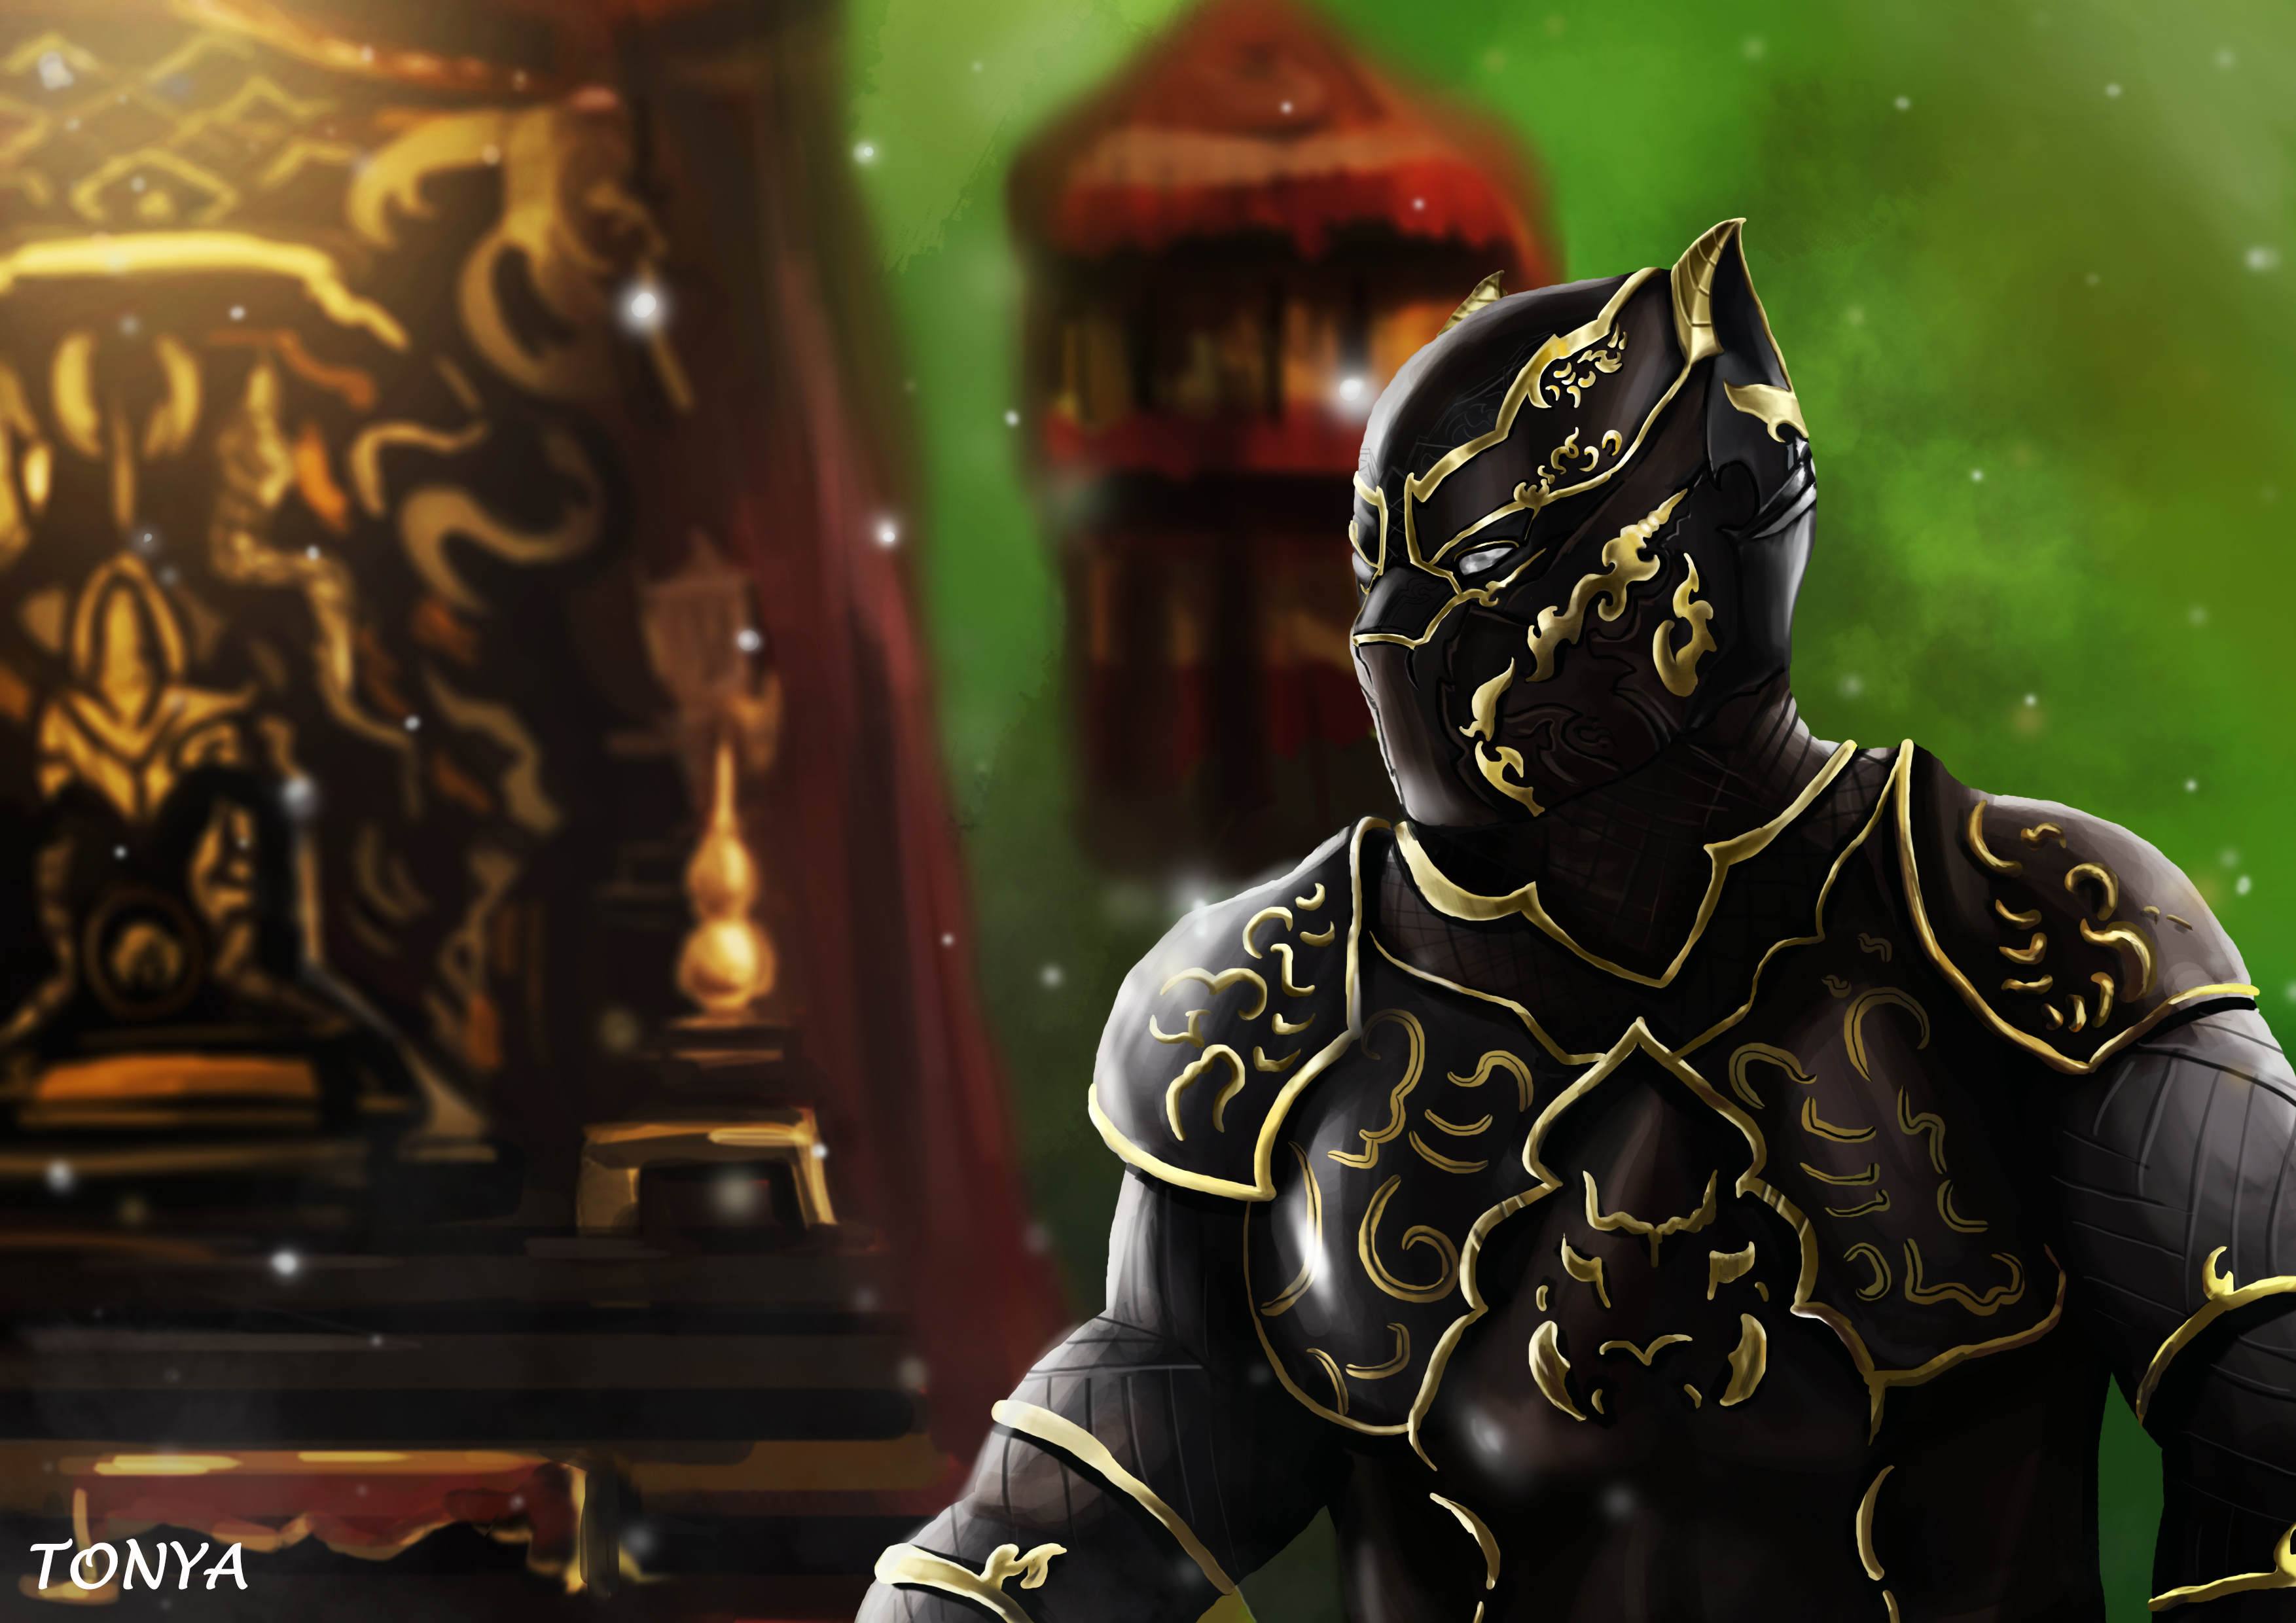 1920x1080 Black Panther Wakanda King Artwork Laptop Full Hd 1080p Hd 4k Wallpapers Images Backgrounds Photos And Pictures